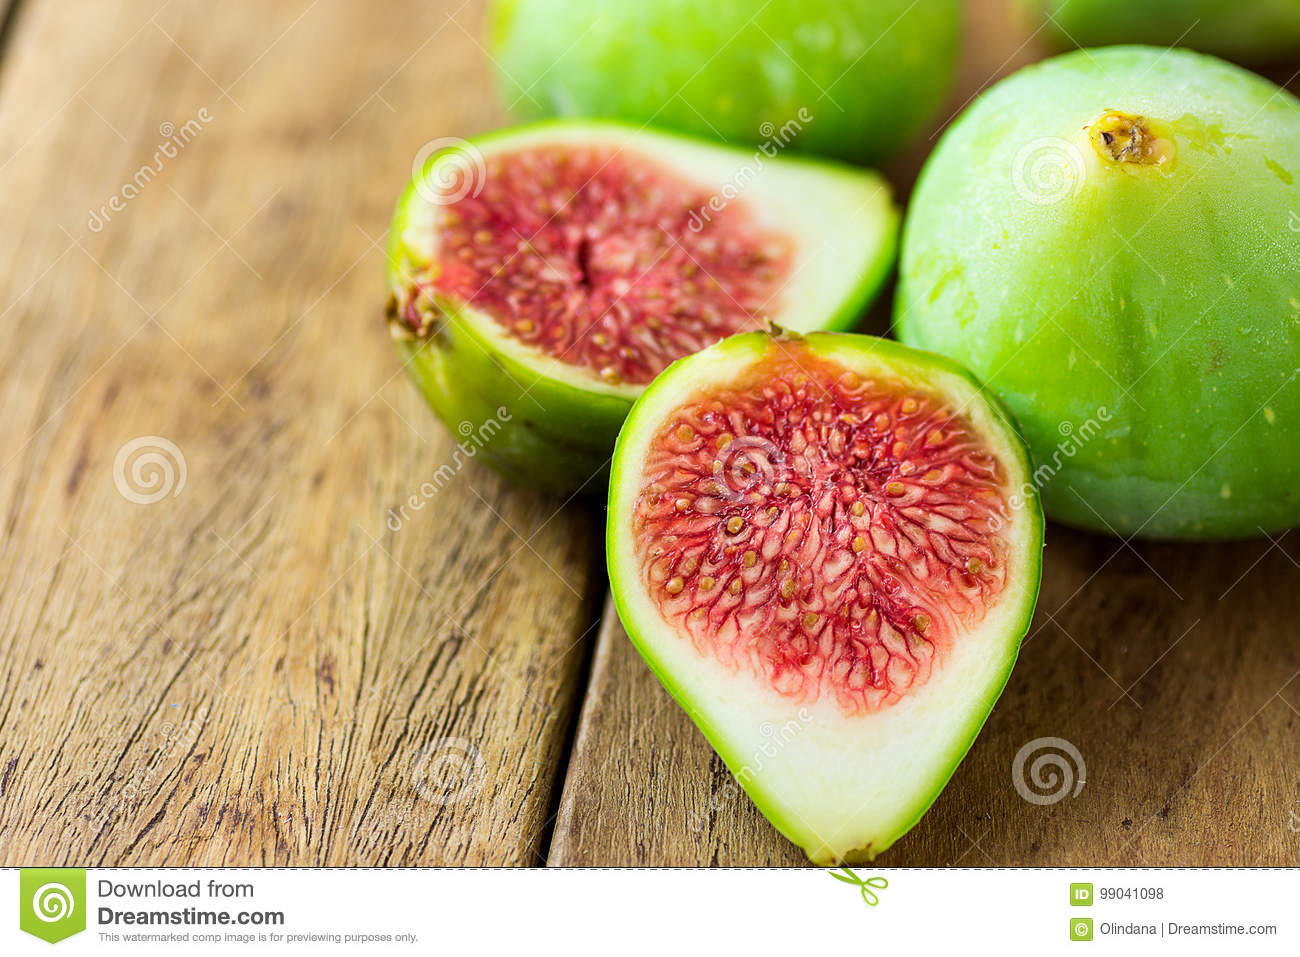 Cut open halved ripe green fig with red pulp. Aged plank wood background. Copy space